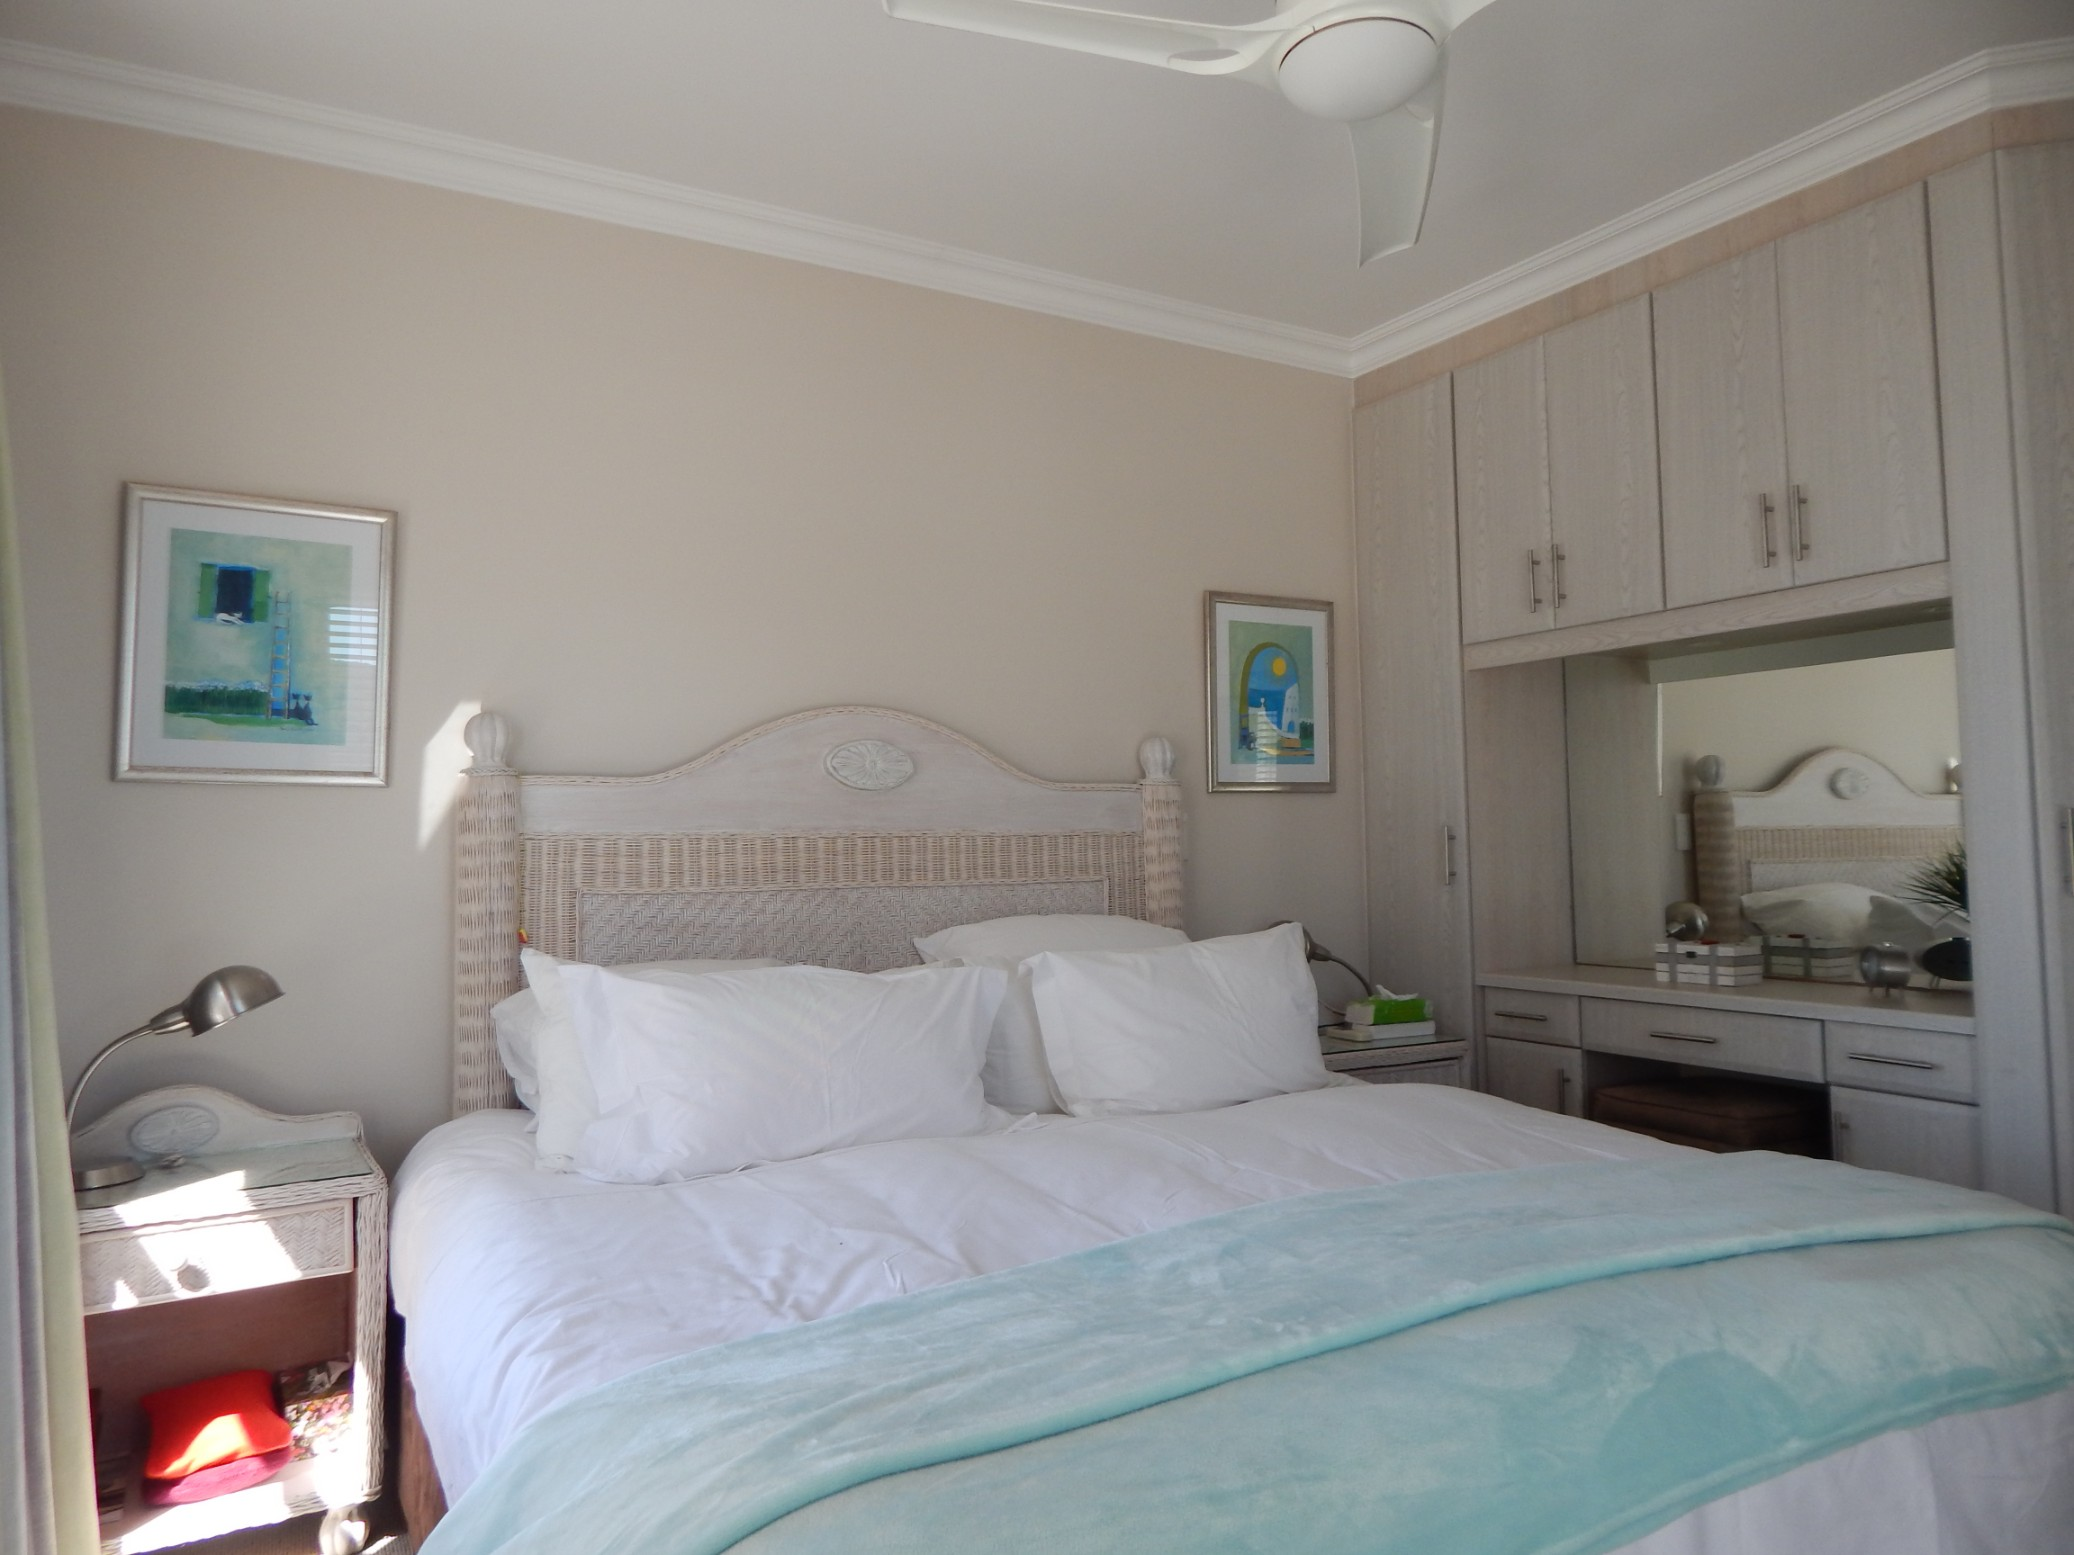 3 Bedroom Apartment for sale in Diaz Beach ENT0069020 : photo#23